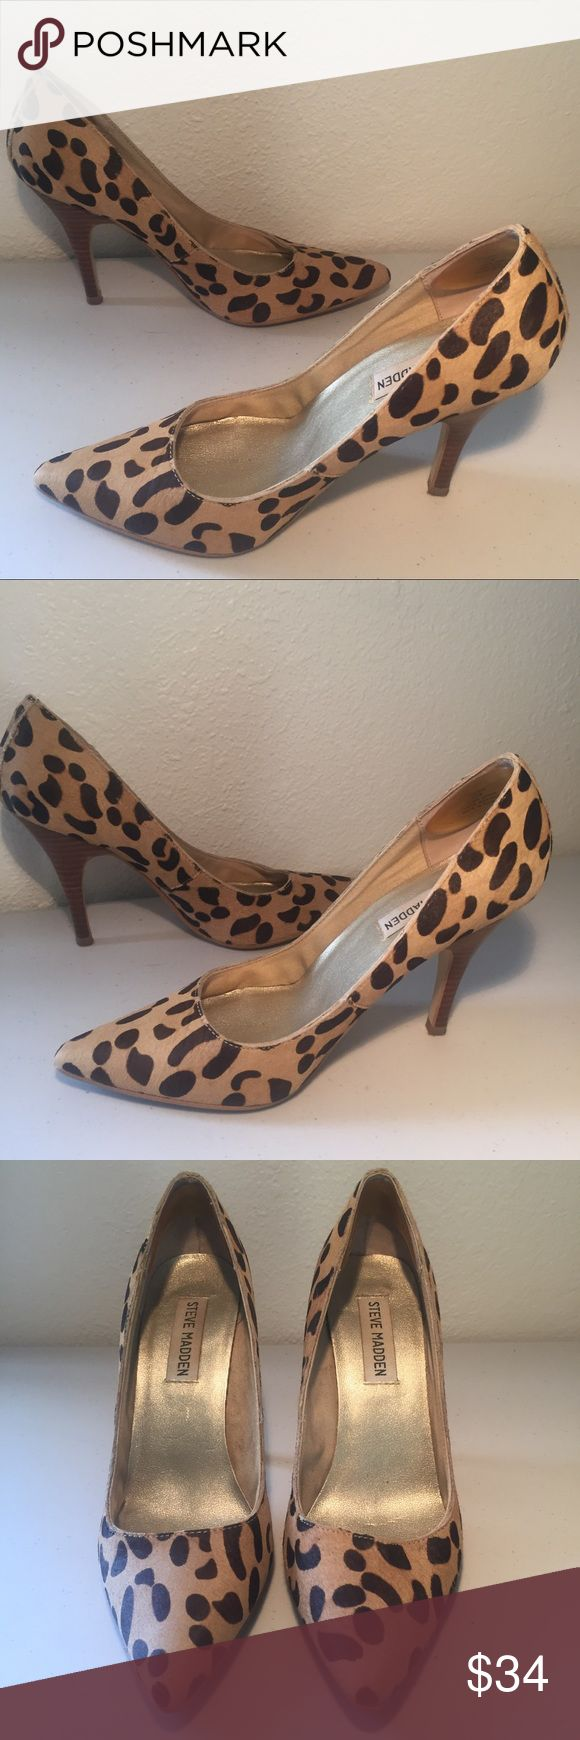 """Leopard Stilettos Leopard print stilettos with calf hair/leather upper by Steve Madden. Worn maybe once! I added silicone heel pads and they are yellowing, but comfy so I left them in. Also, there is an unidentifiable colored spec on the top edge of the toe opening on one shoe- hard to describe the location and the mark is tiny. I tried to take a photo. Size 6.5. 4"""" heel. Fun and sexy! Steve Madden Shoes Heels"""